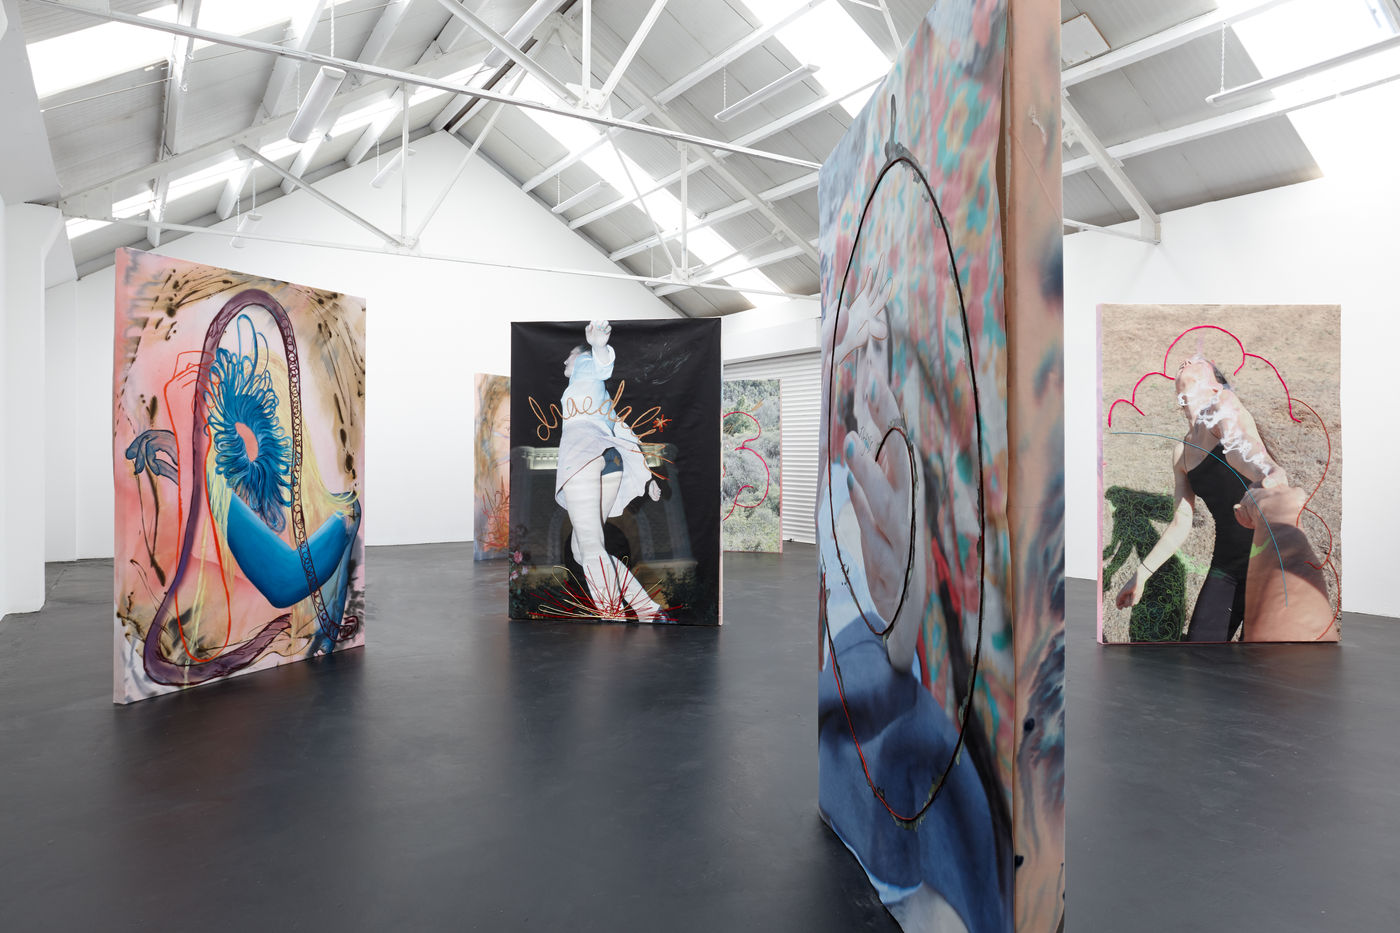 03. Nora Berman - Charm - Installation View III